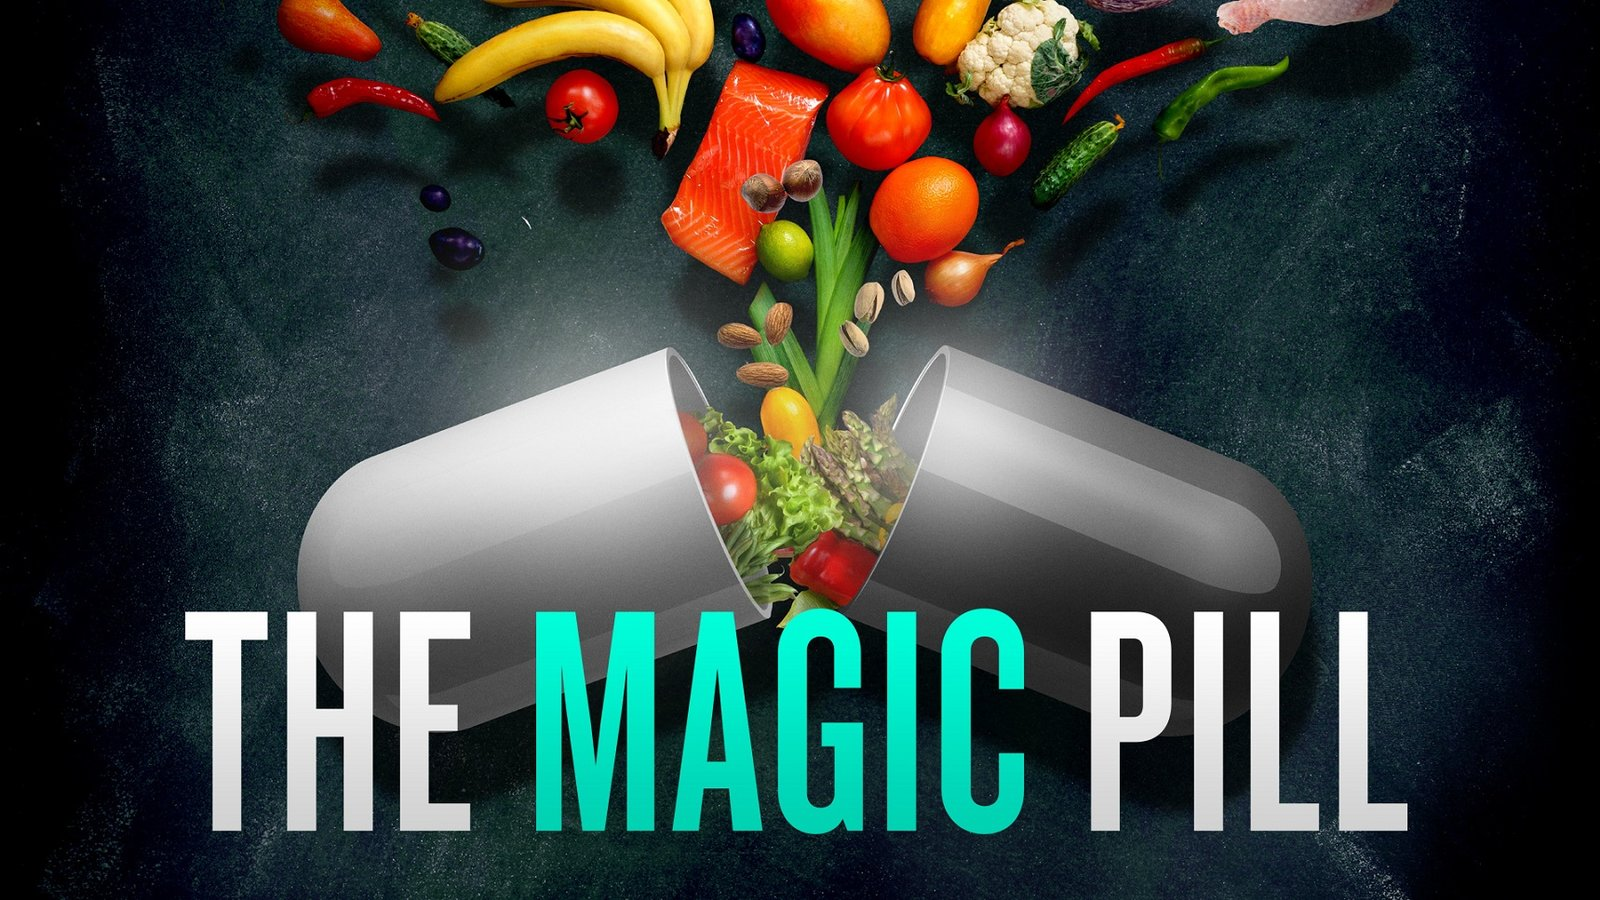 The Magic Pill - Combating Illness Through Diet Change